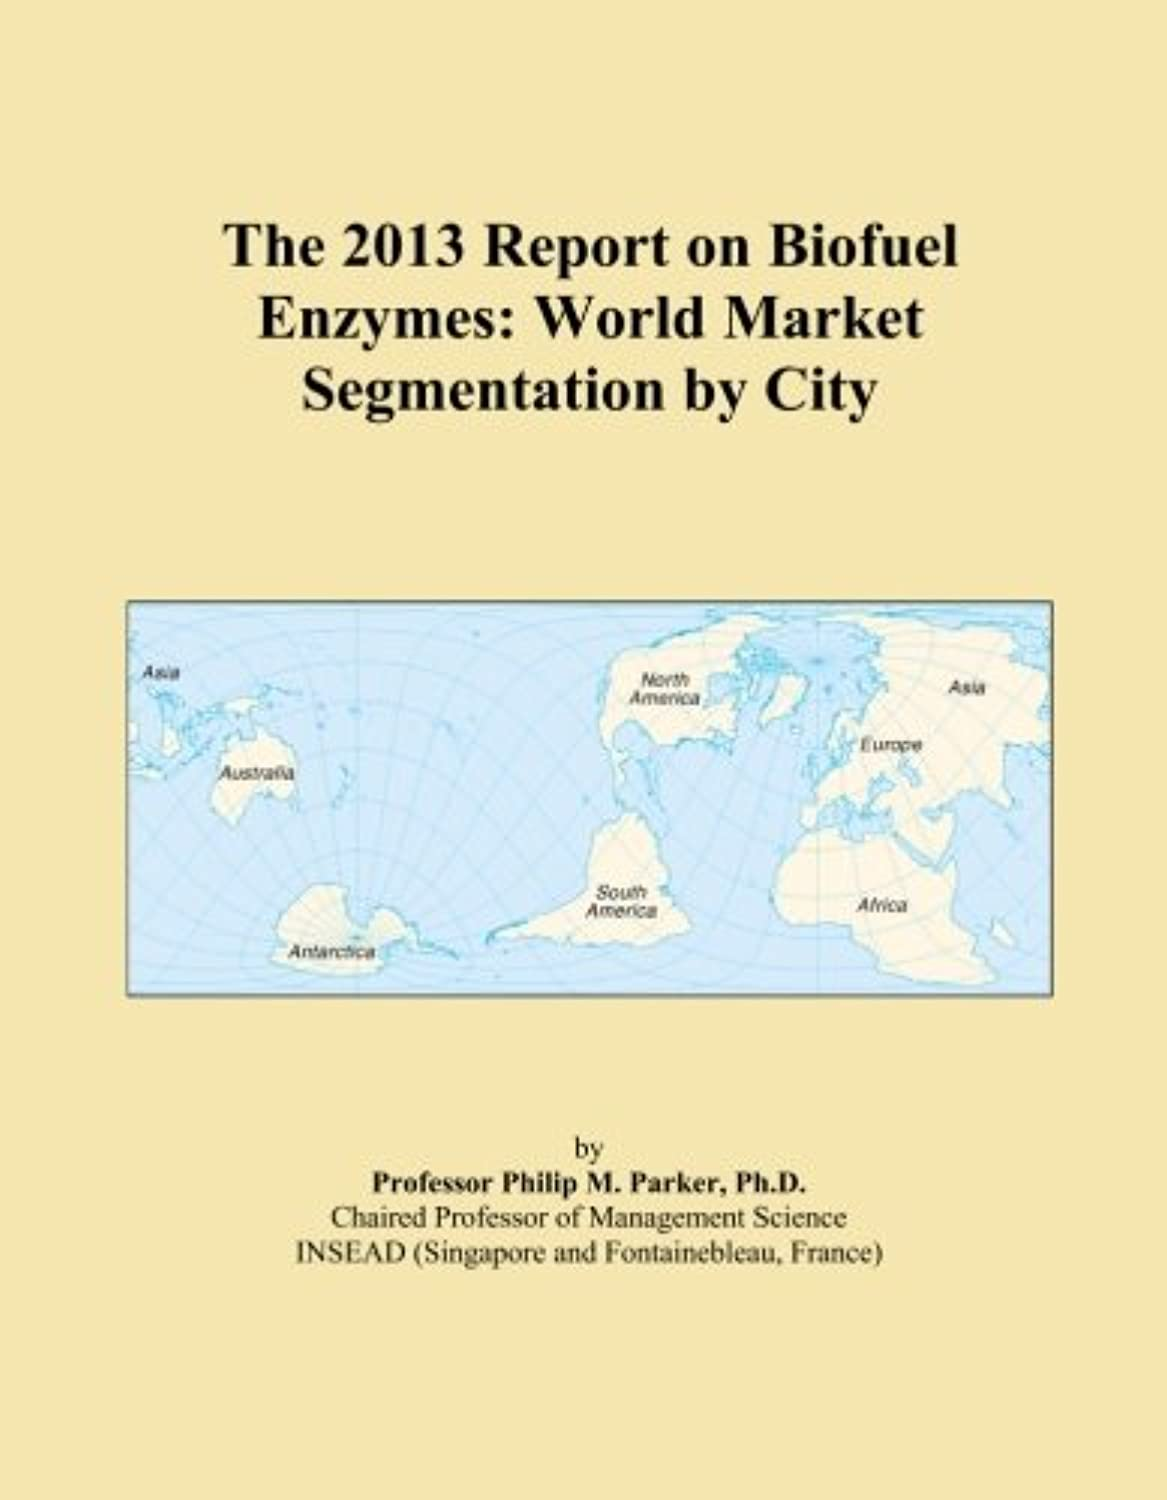 The 2013 Report on Biofuel Enzymes: World Market Segmentation by City